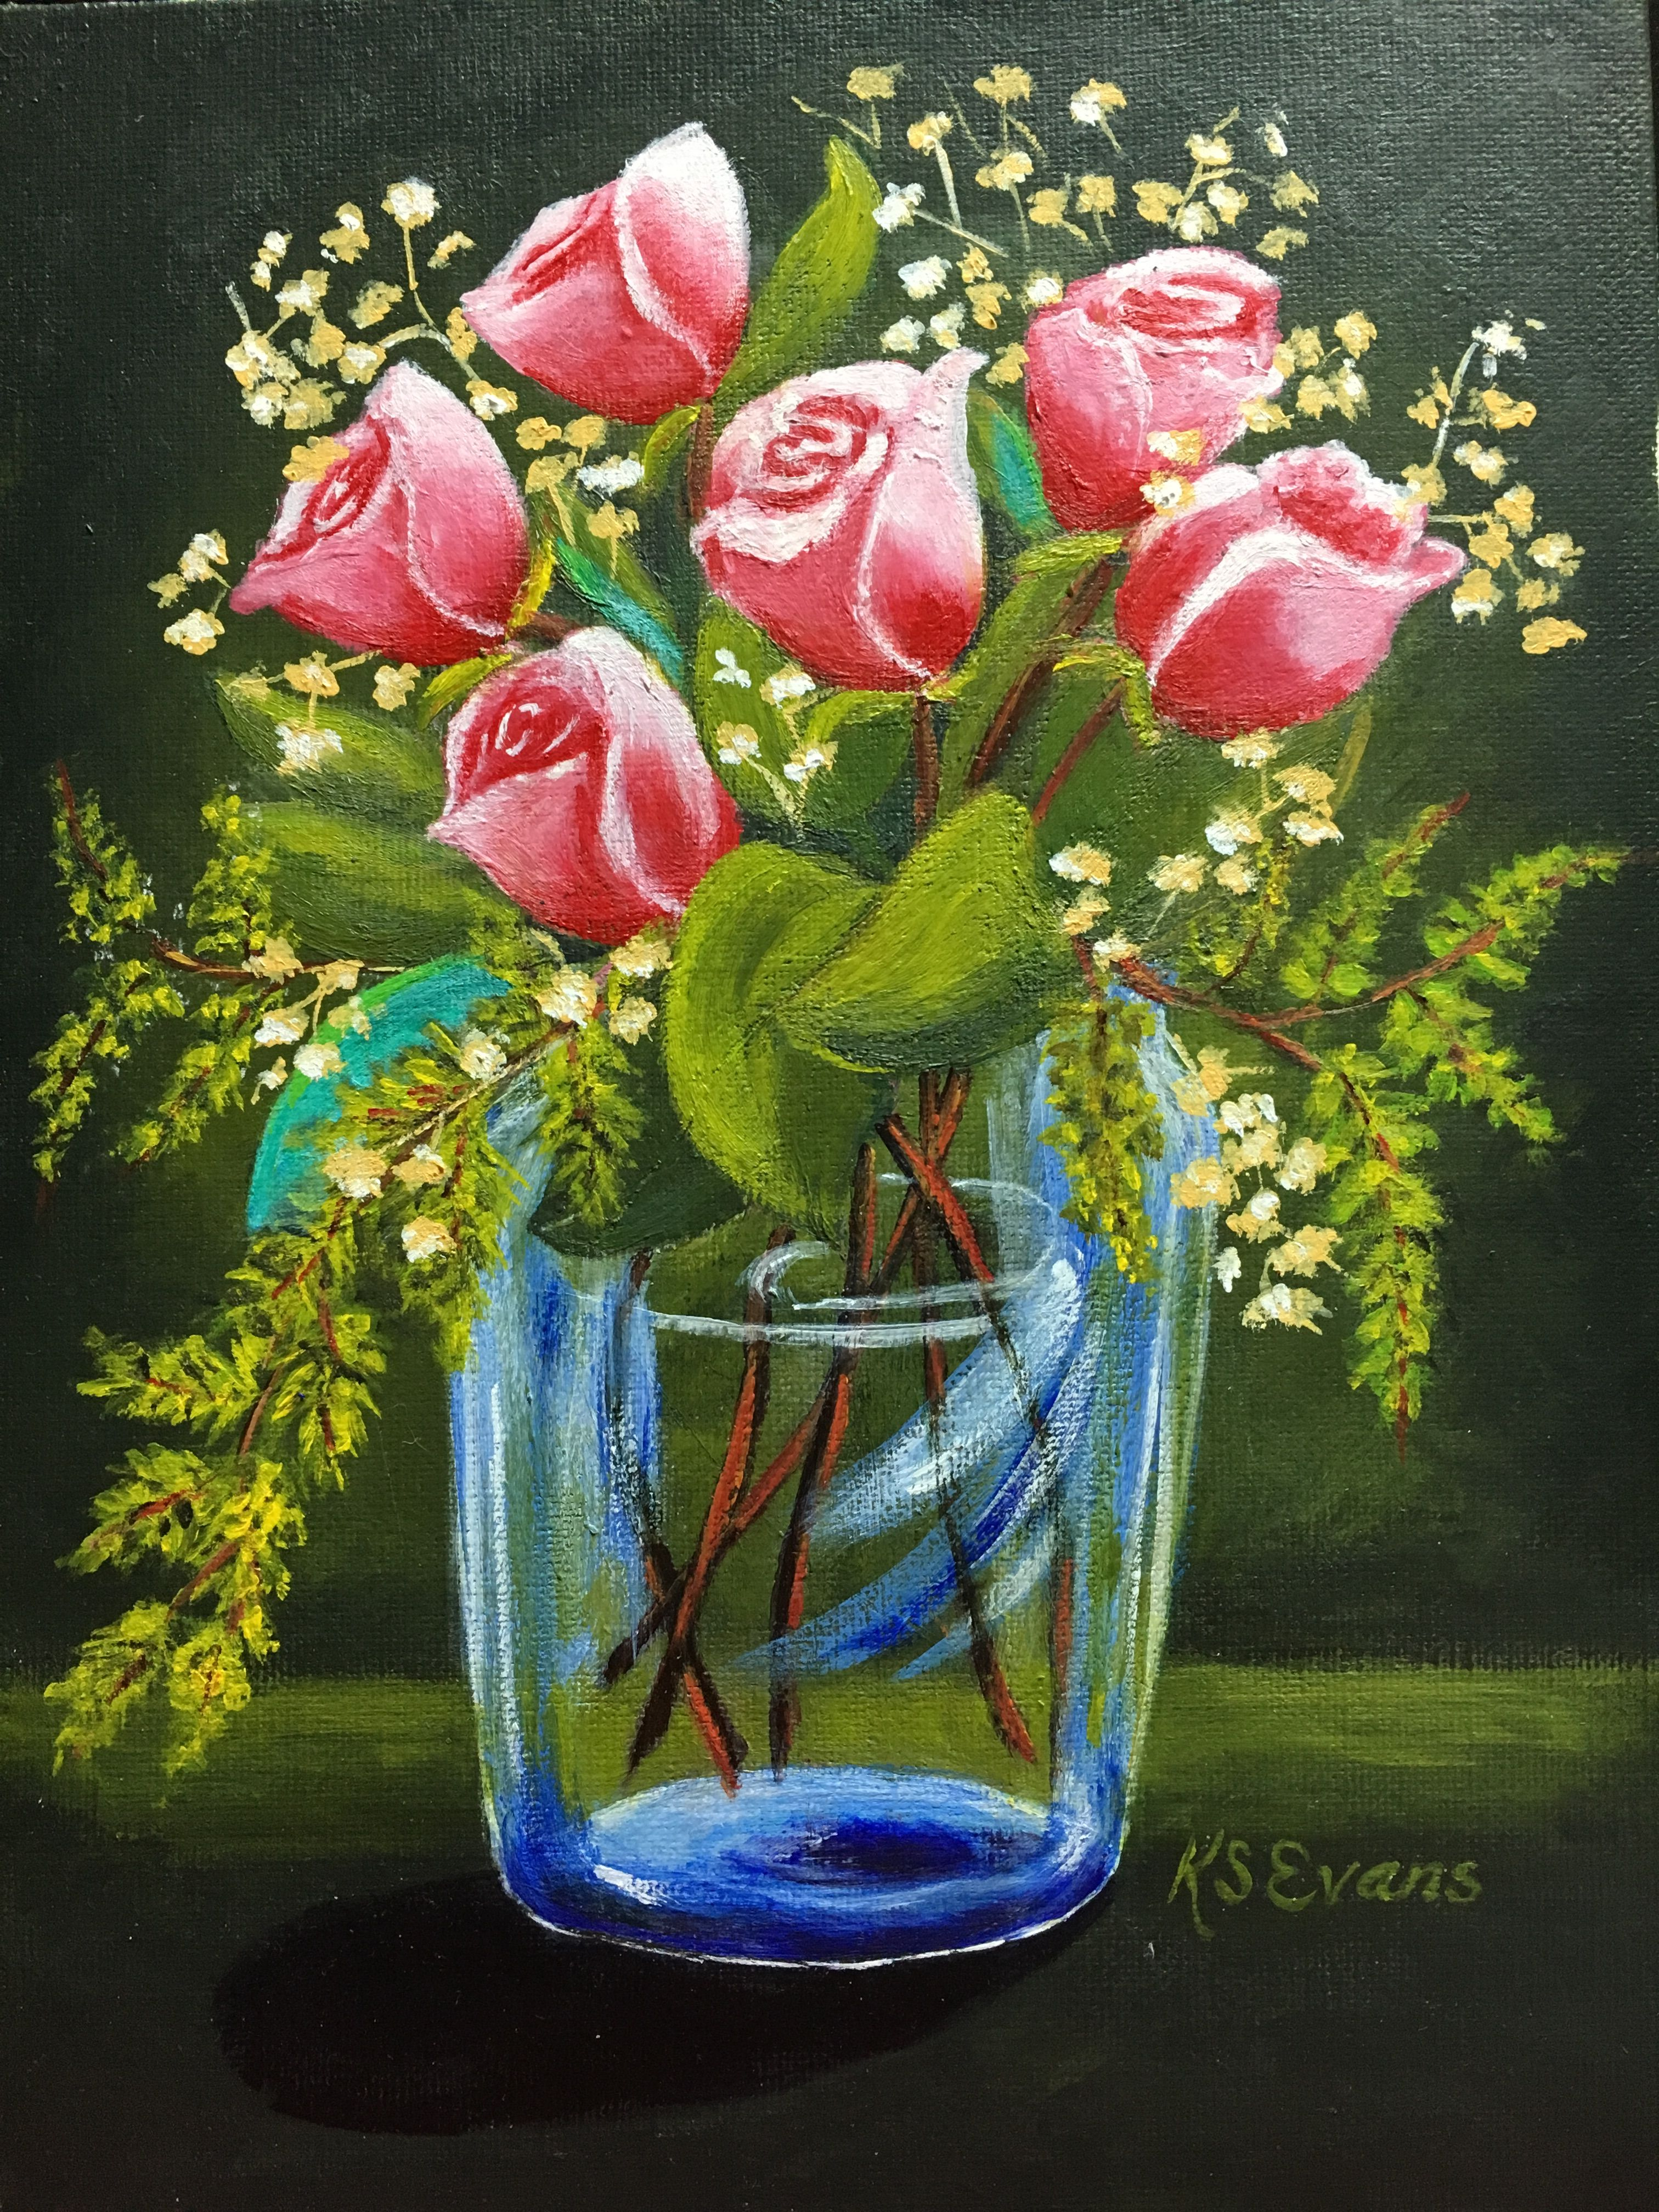 Pink Roses Ina Glass Vase By Kathy Evens Very Lovely Kathy